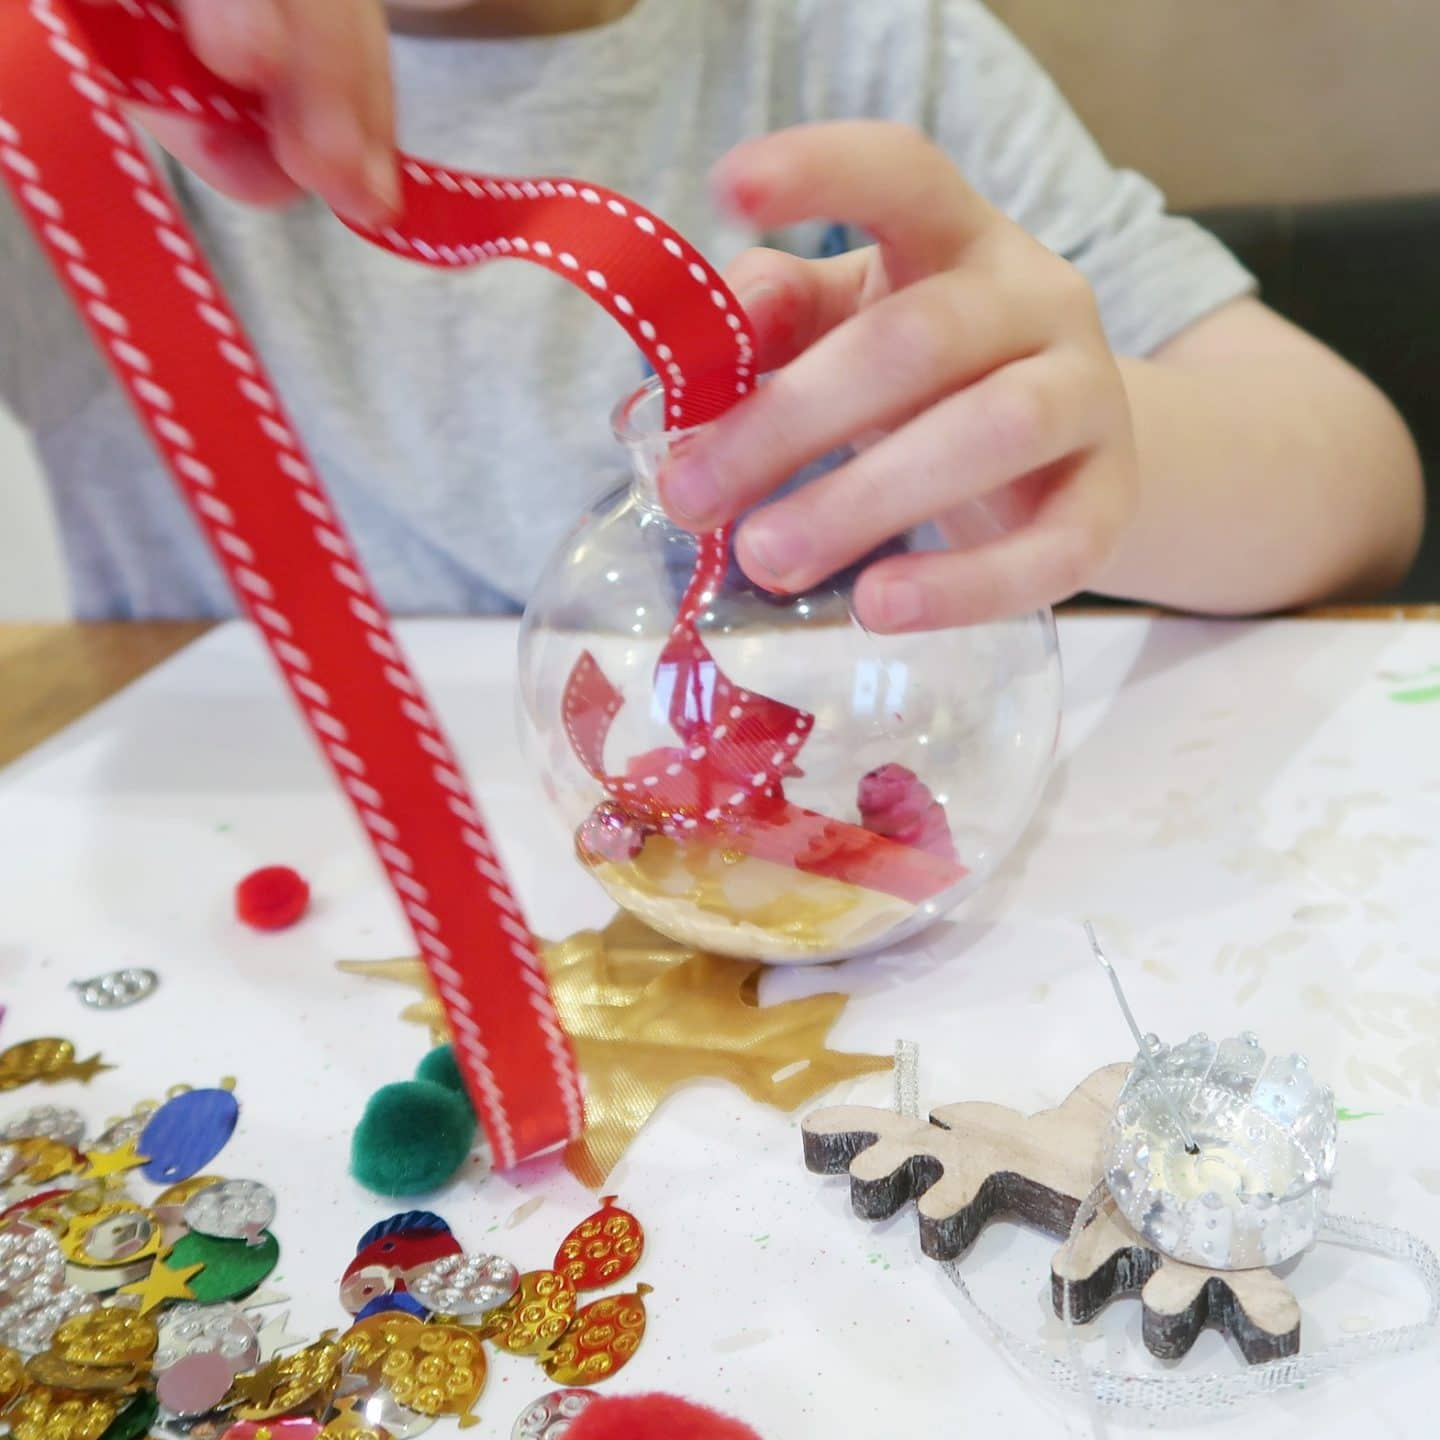 Boy threading a red ribbon into a clear plastic bauble - for sensory bauble craft